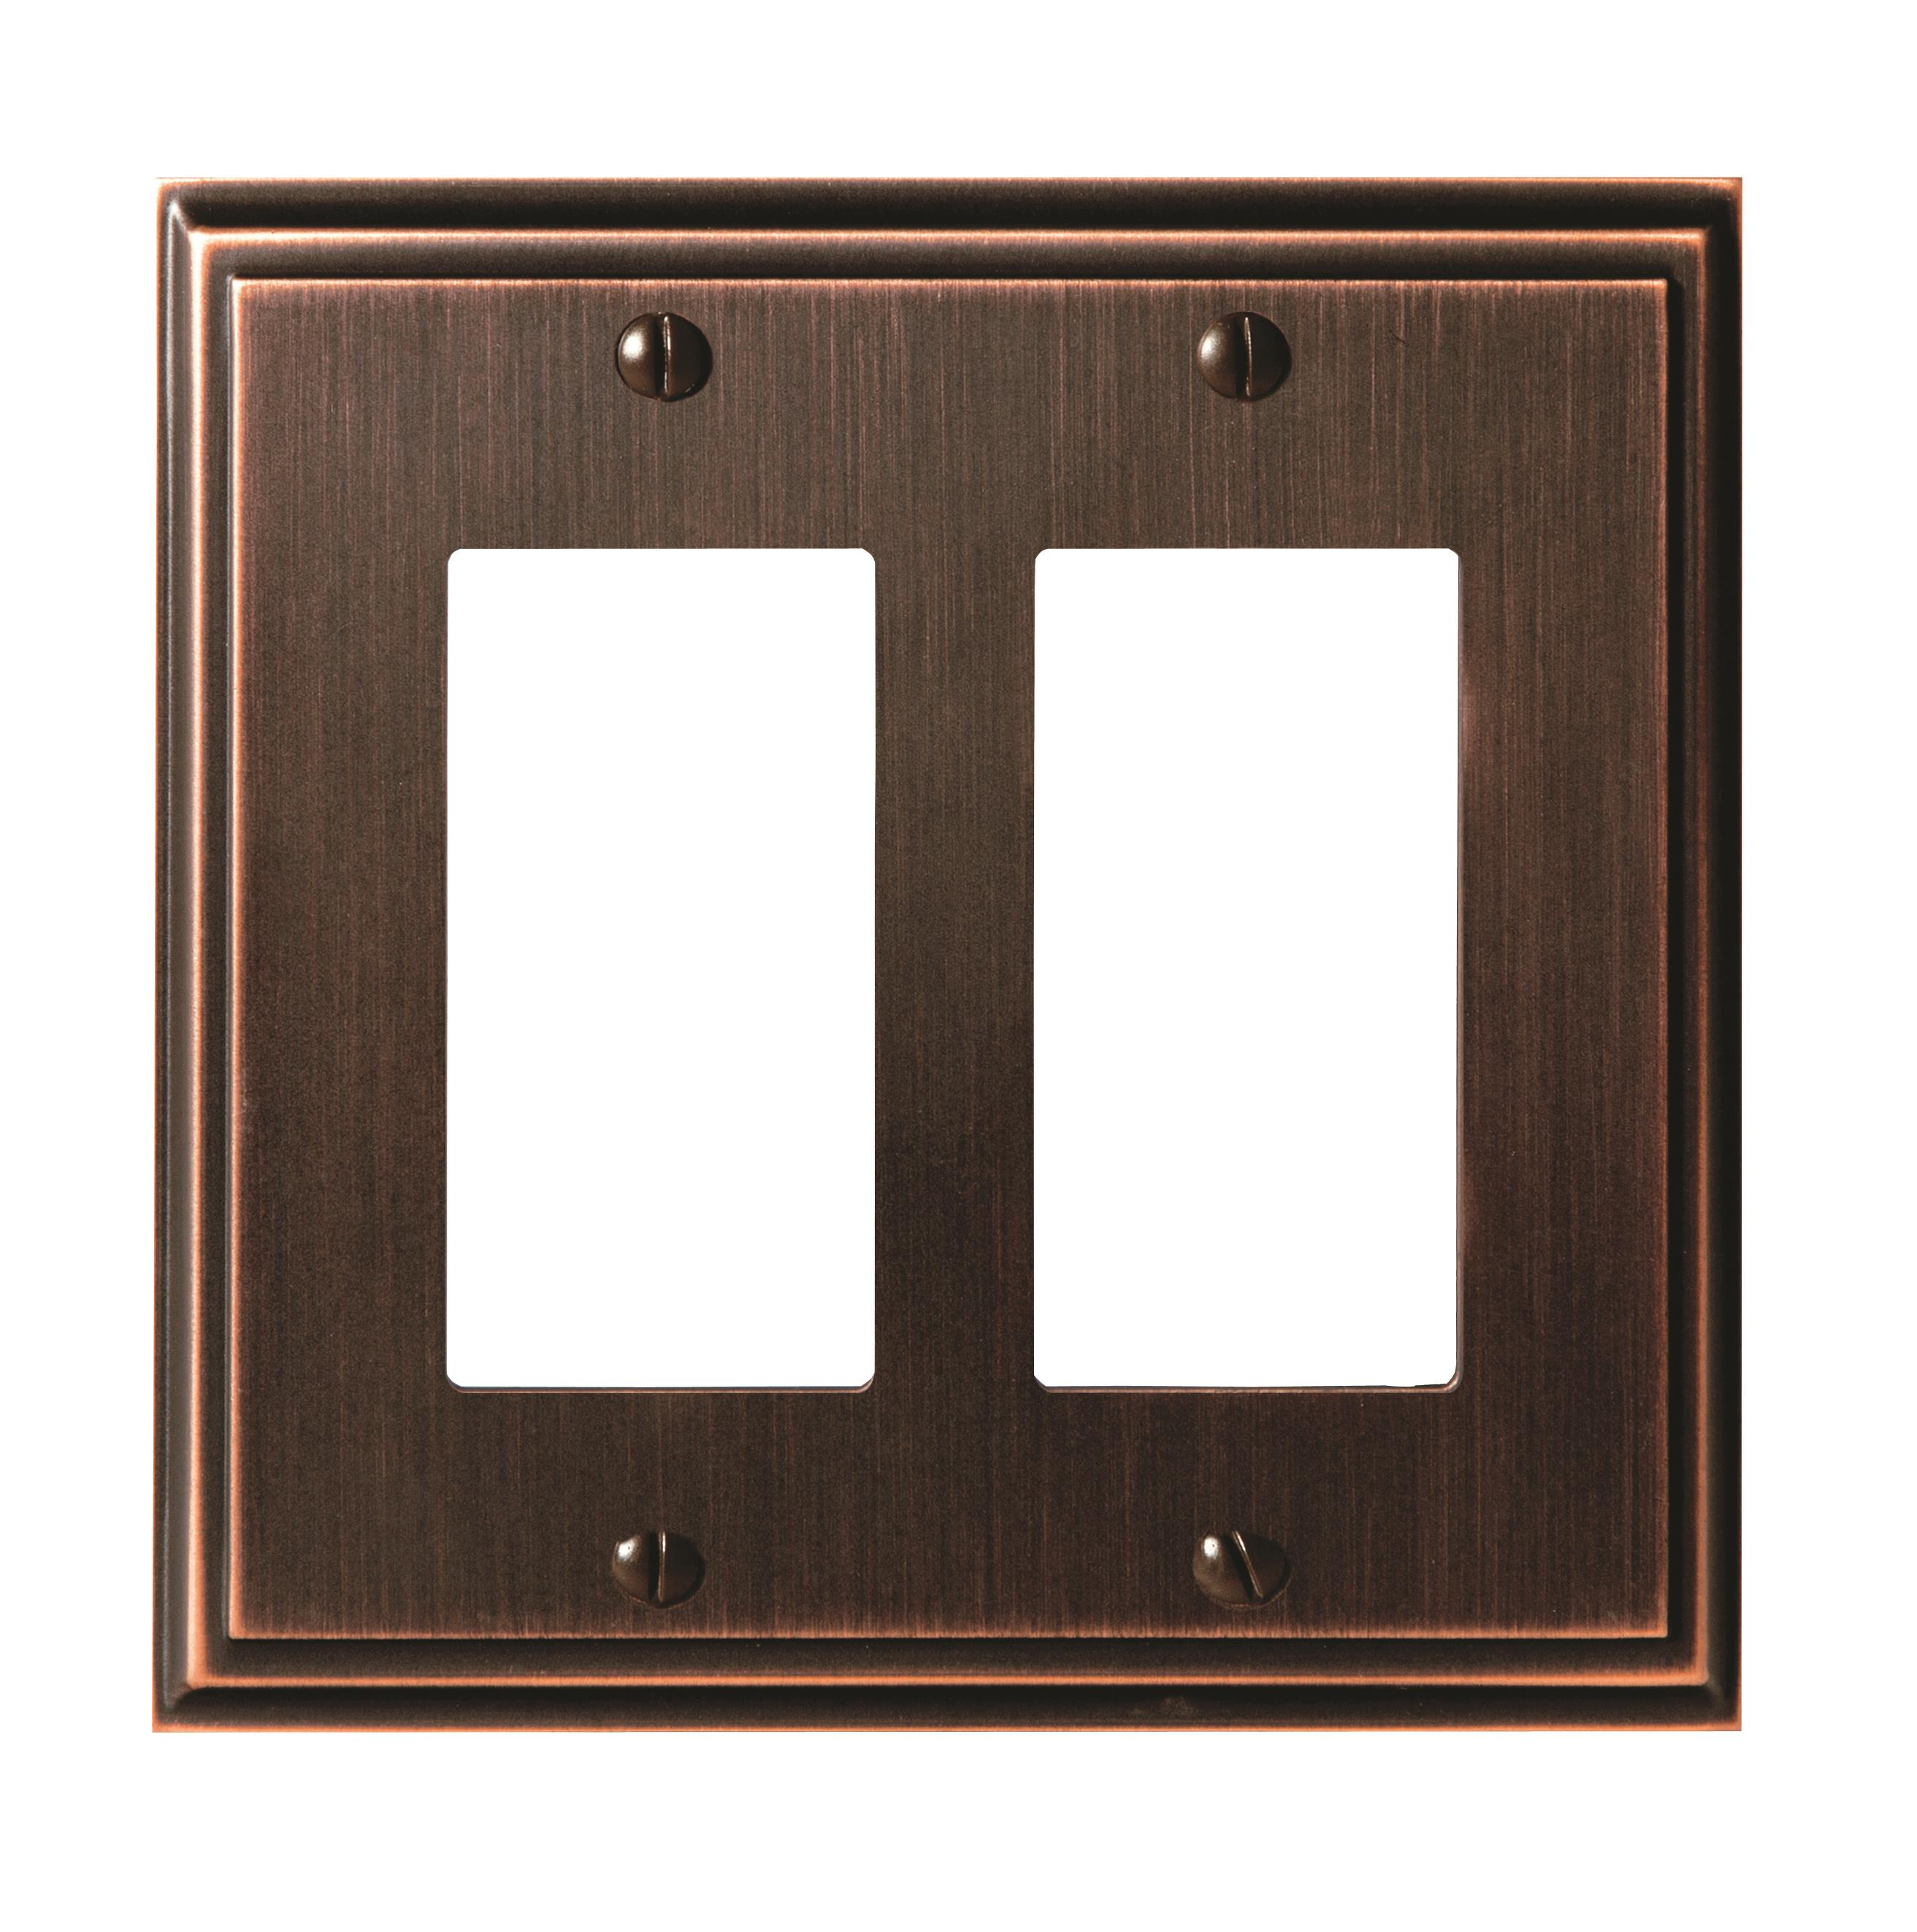 Mulholland 2 Rocker Oil-Rubbed Bronze Wall Plate